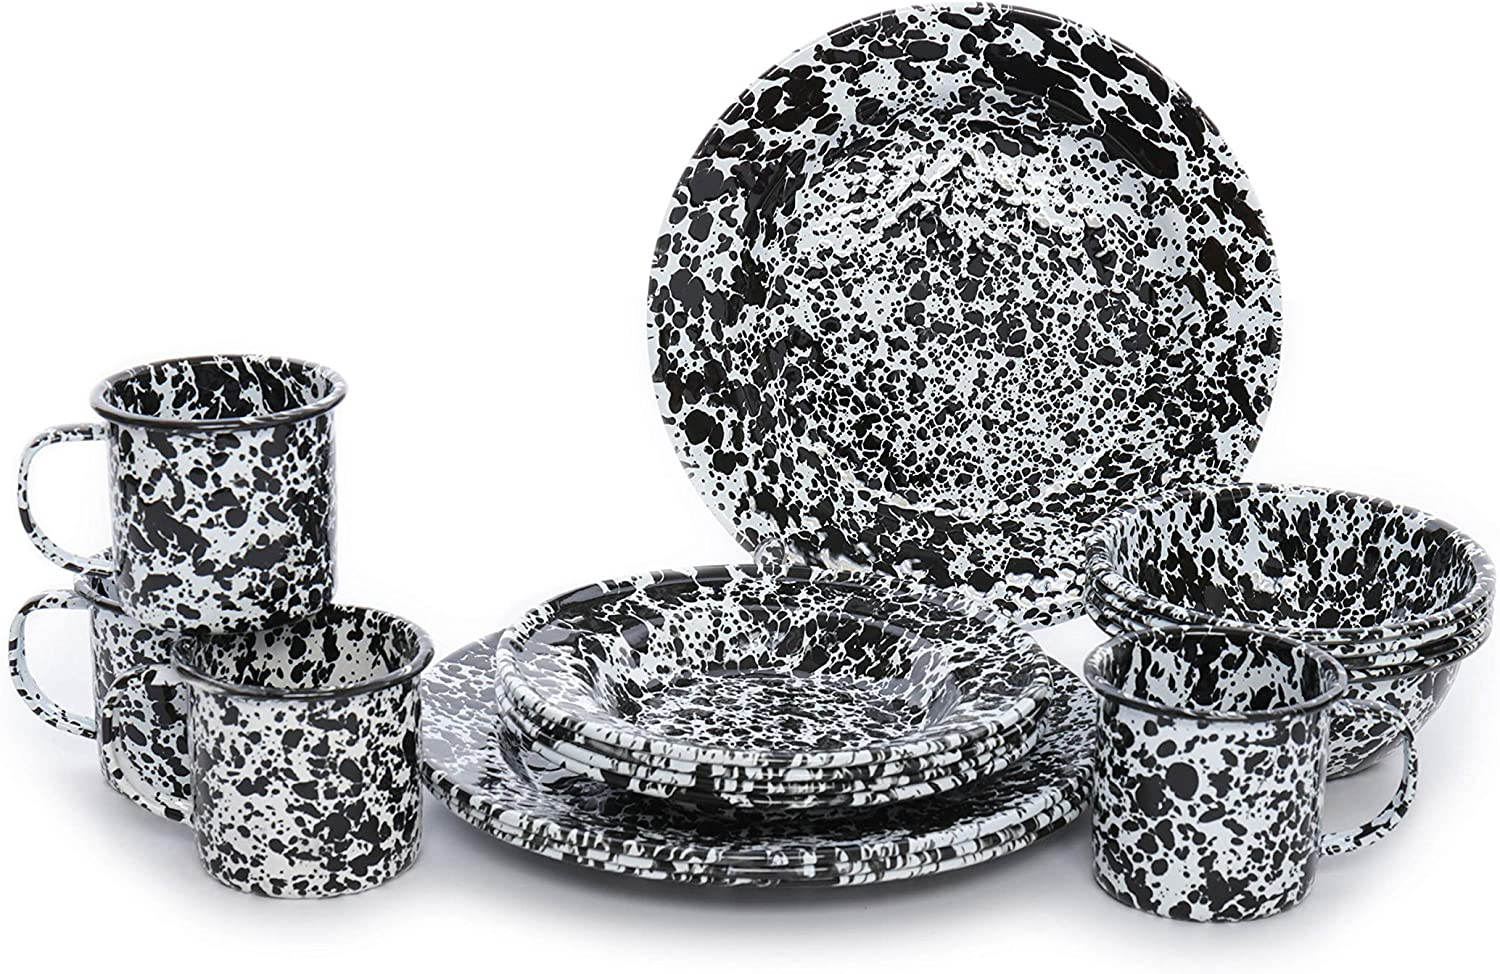 Black /& White Marble 6.25 Crow Canyon Home Enamelware Cereal Bowl Set of 4